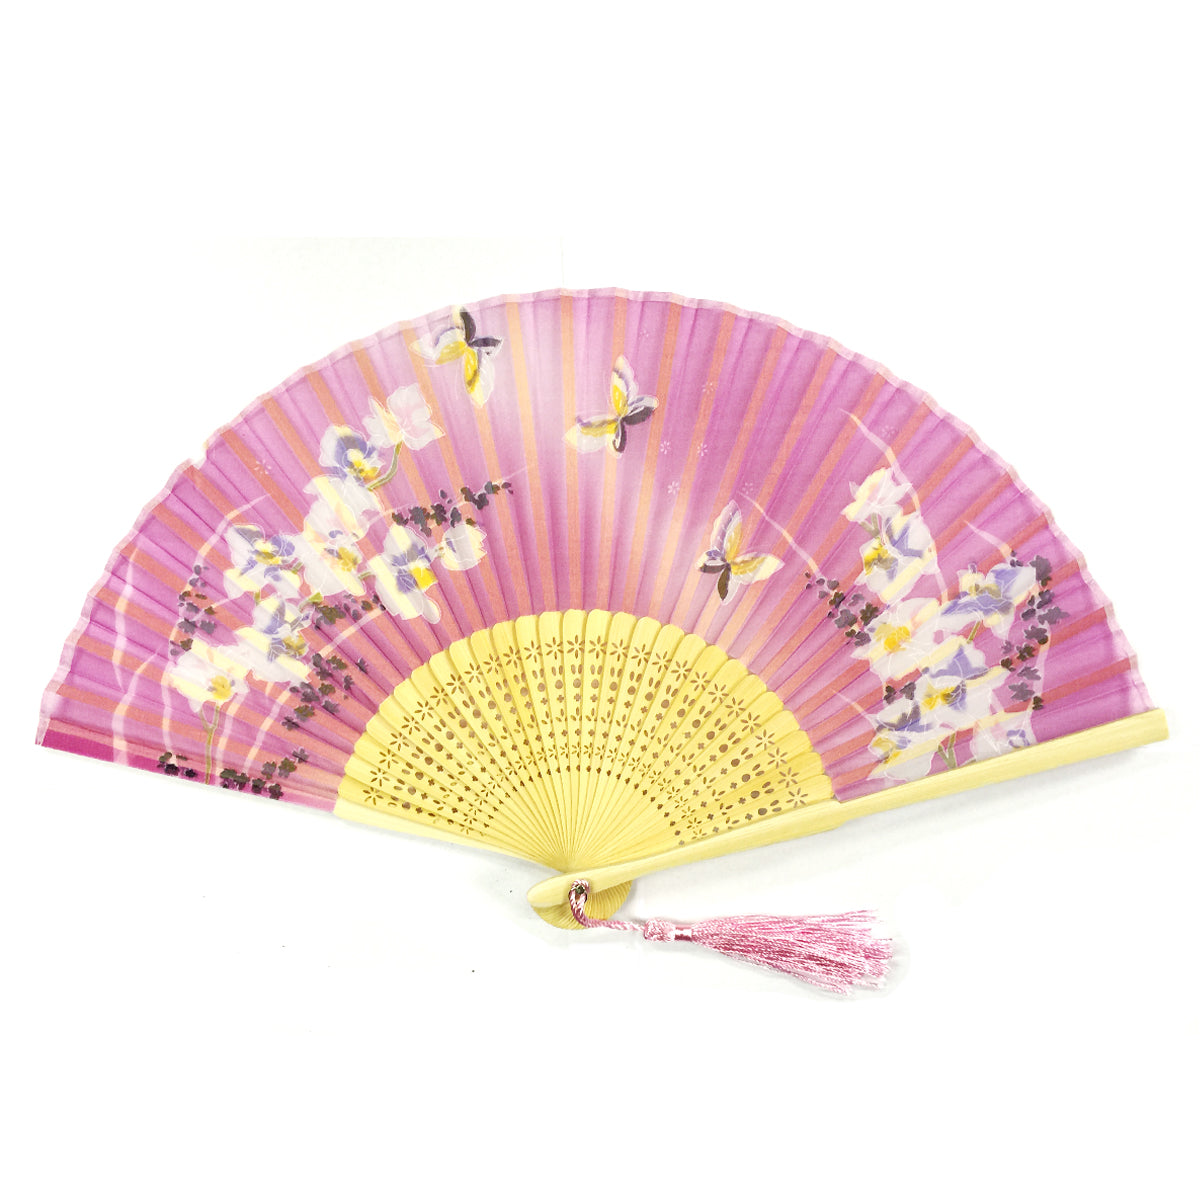 Wrapables Silk Handheld Folding Fan with Tassel and Protective Sleeve